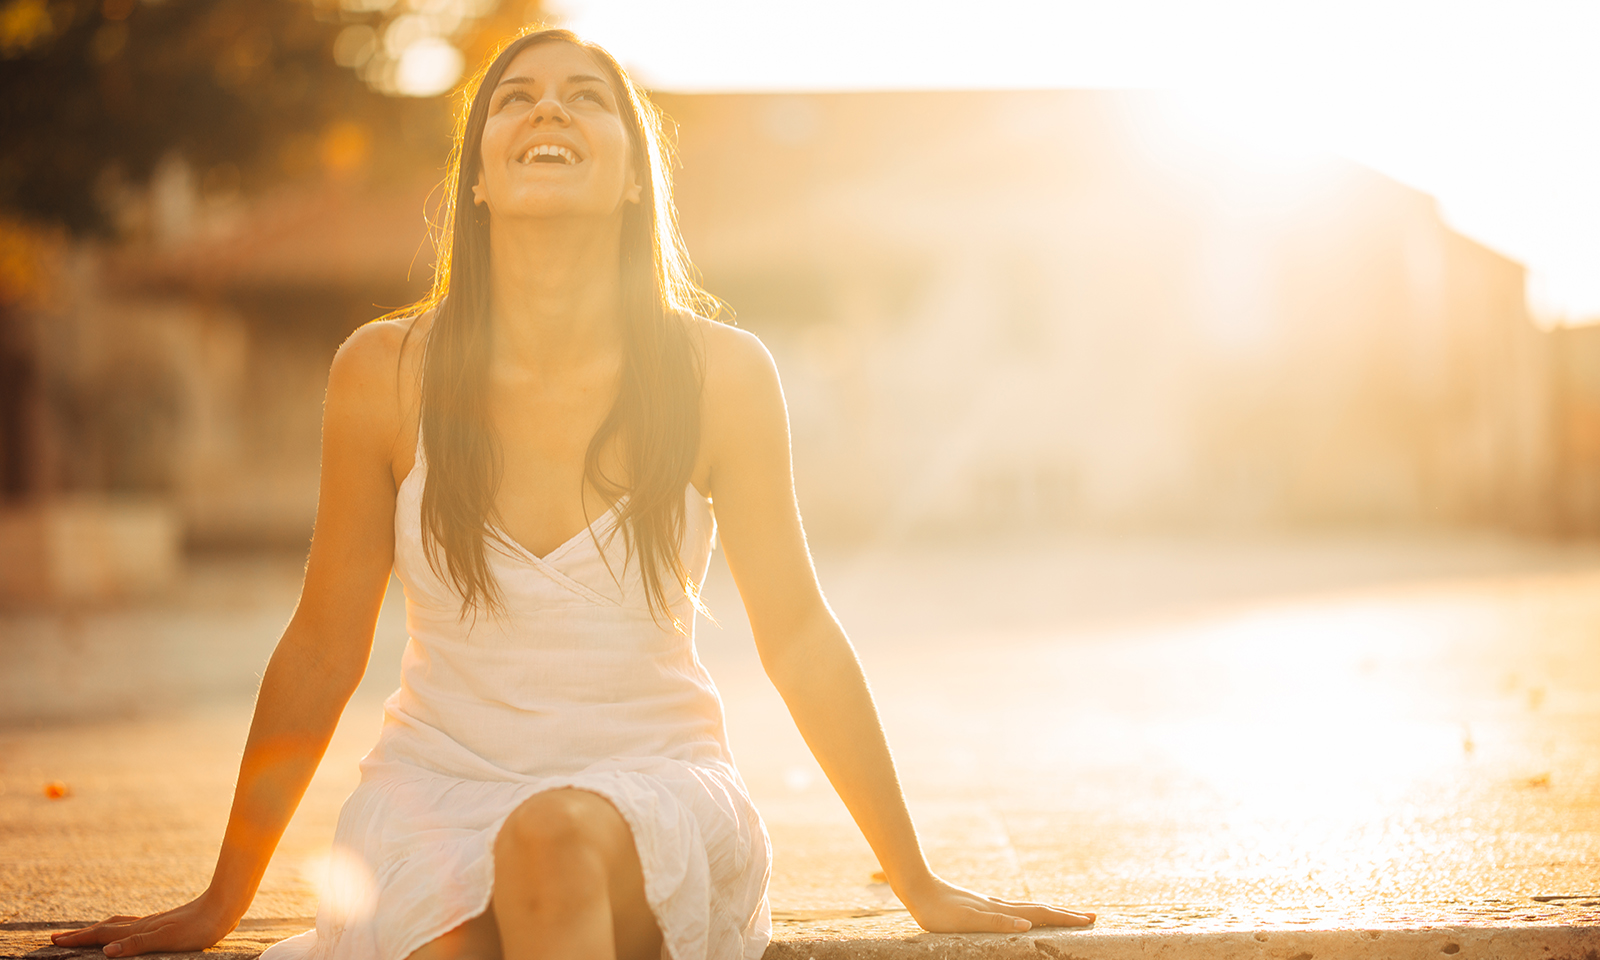 woman-sitting-on-pier-looking-up-in-the-sunlight